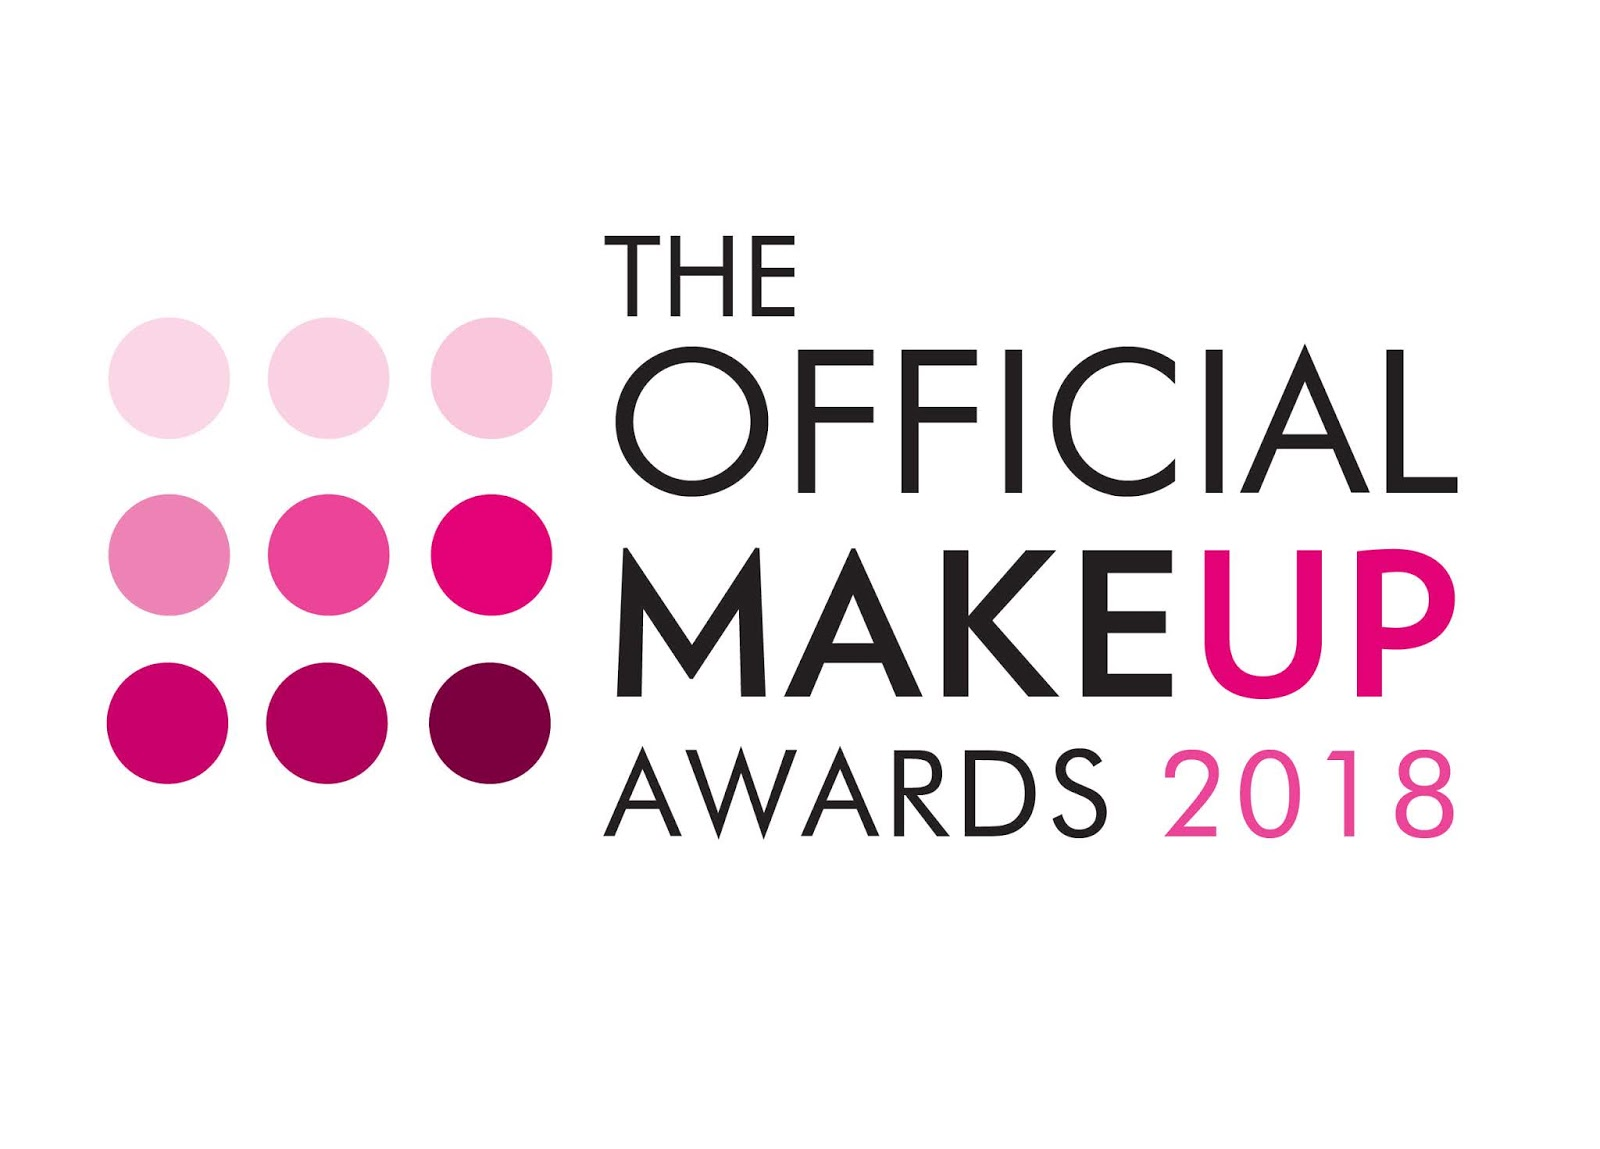 The winners of the Official Make-Up Awards 2018 are announced